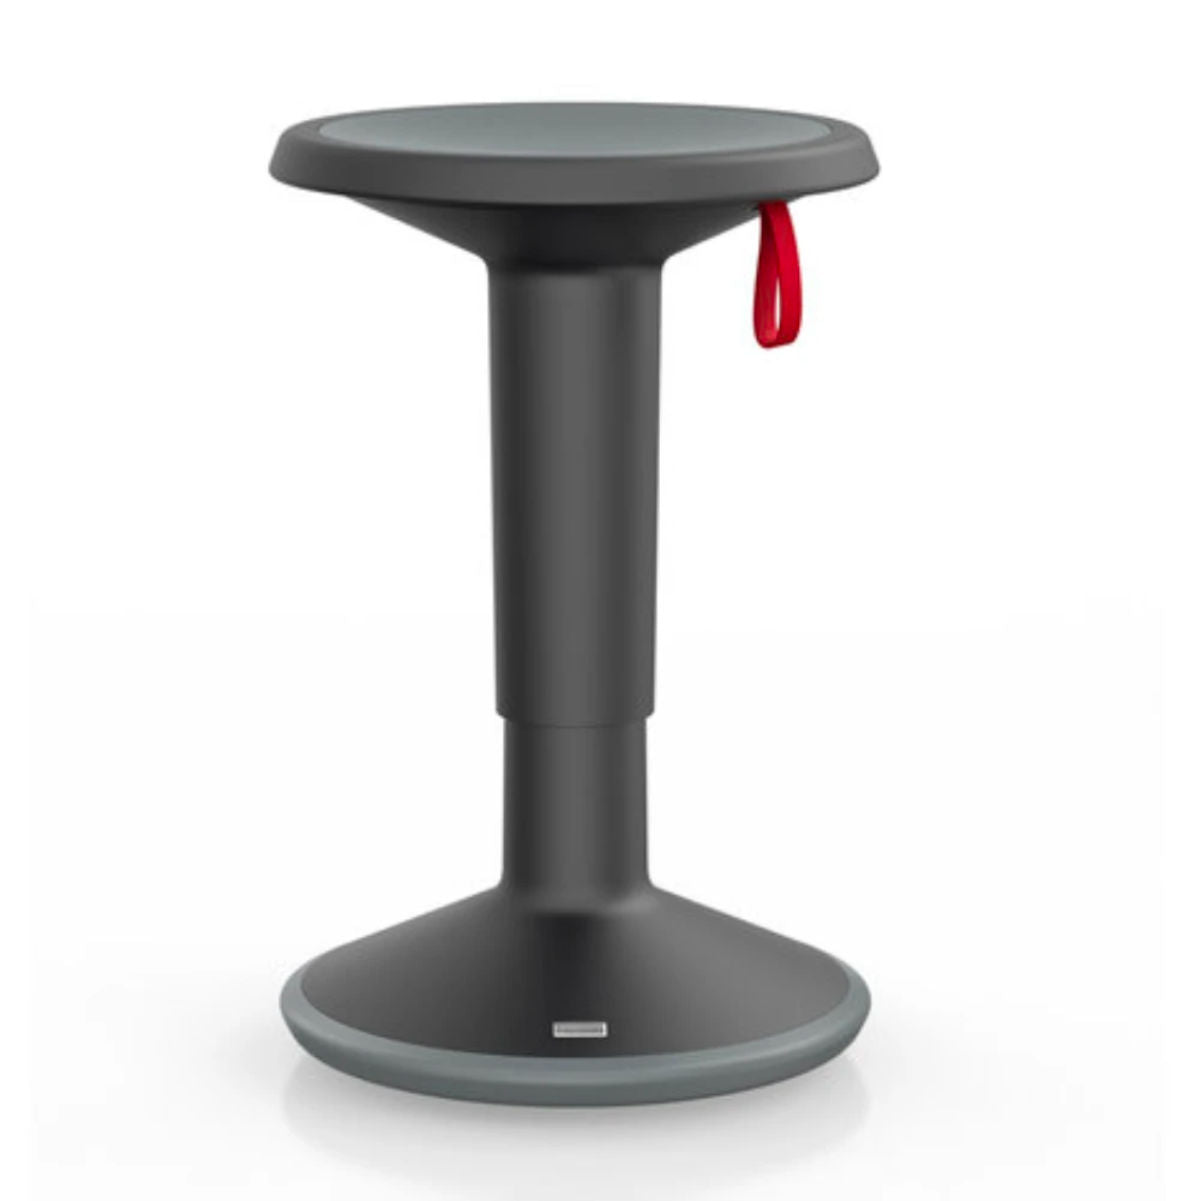 Interstuhl Upis1 ergonomic stool, space black